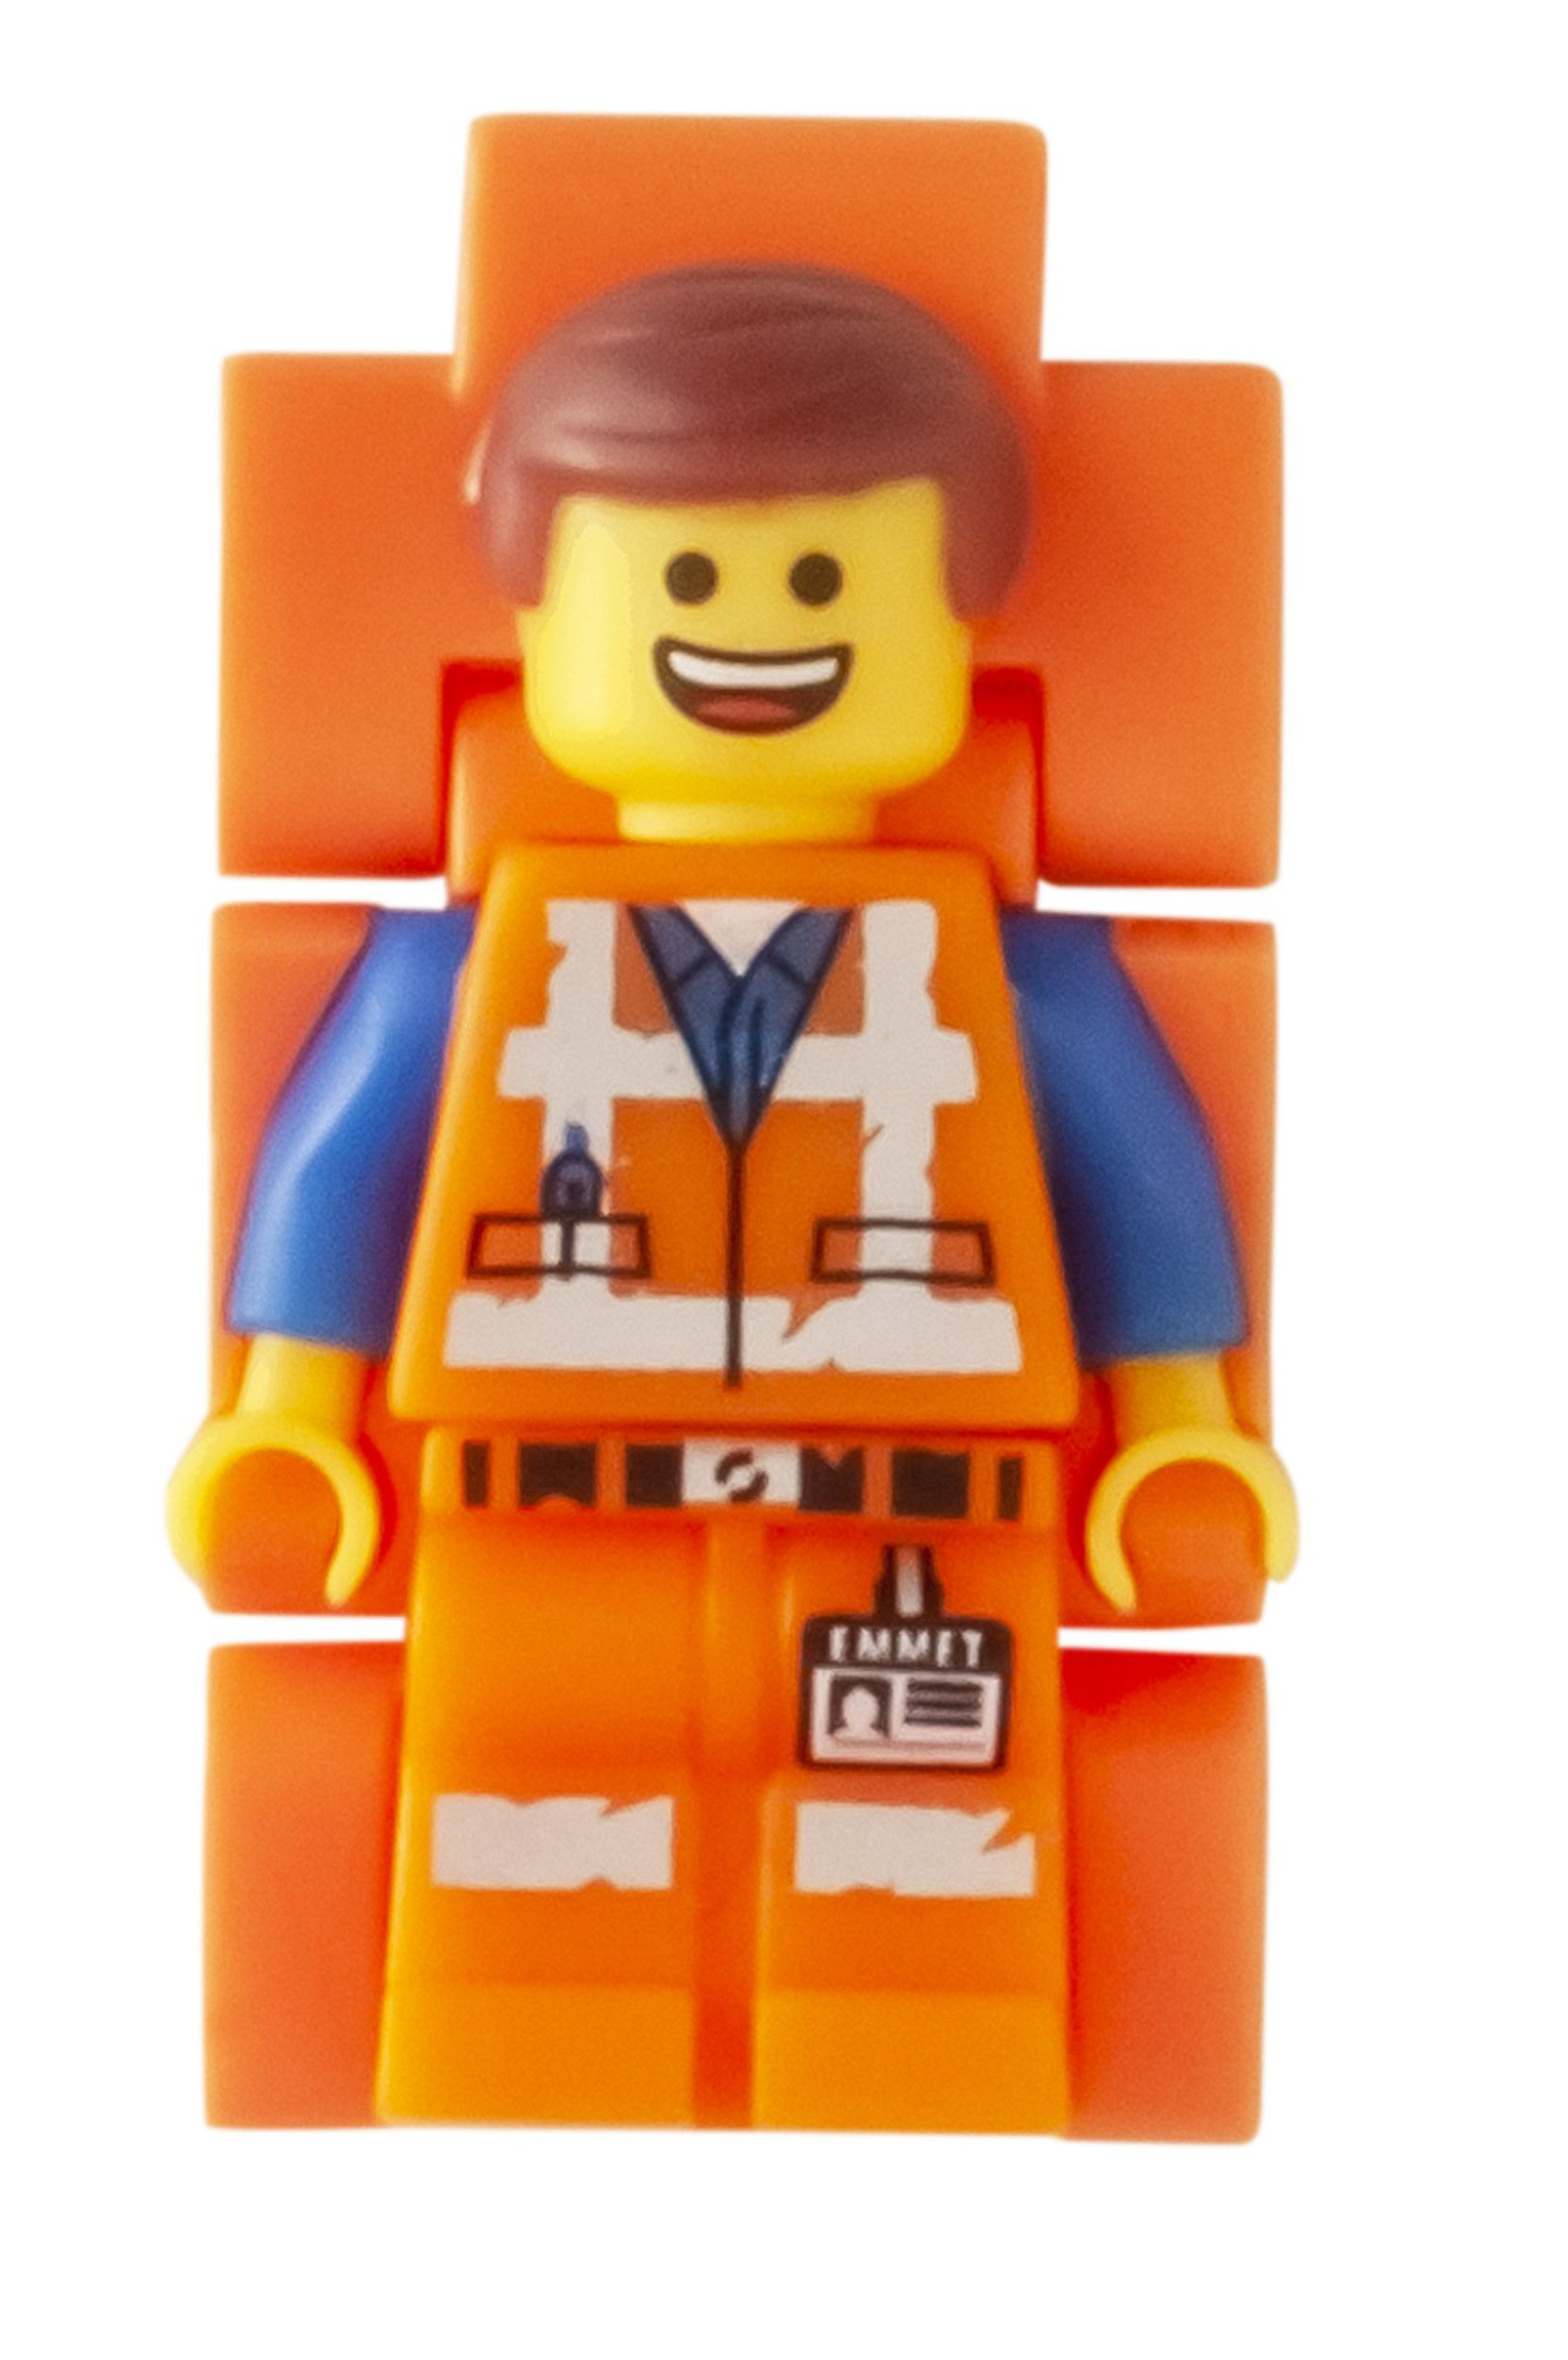 LEGO Gear 5005700 THE LEGO® MOVIE 2™ Minifiguren-Armbanduhr Emmet LEGO_5005700_alt3.jpg